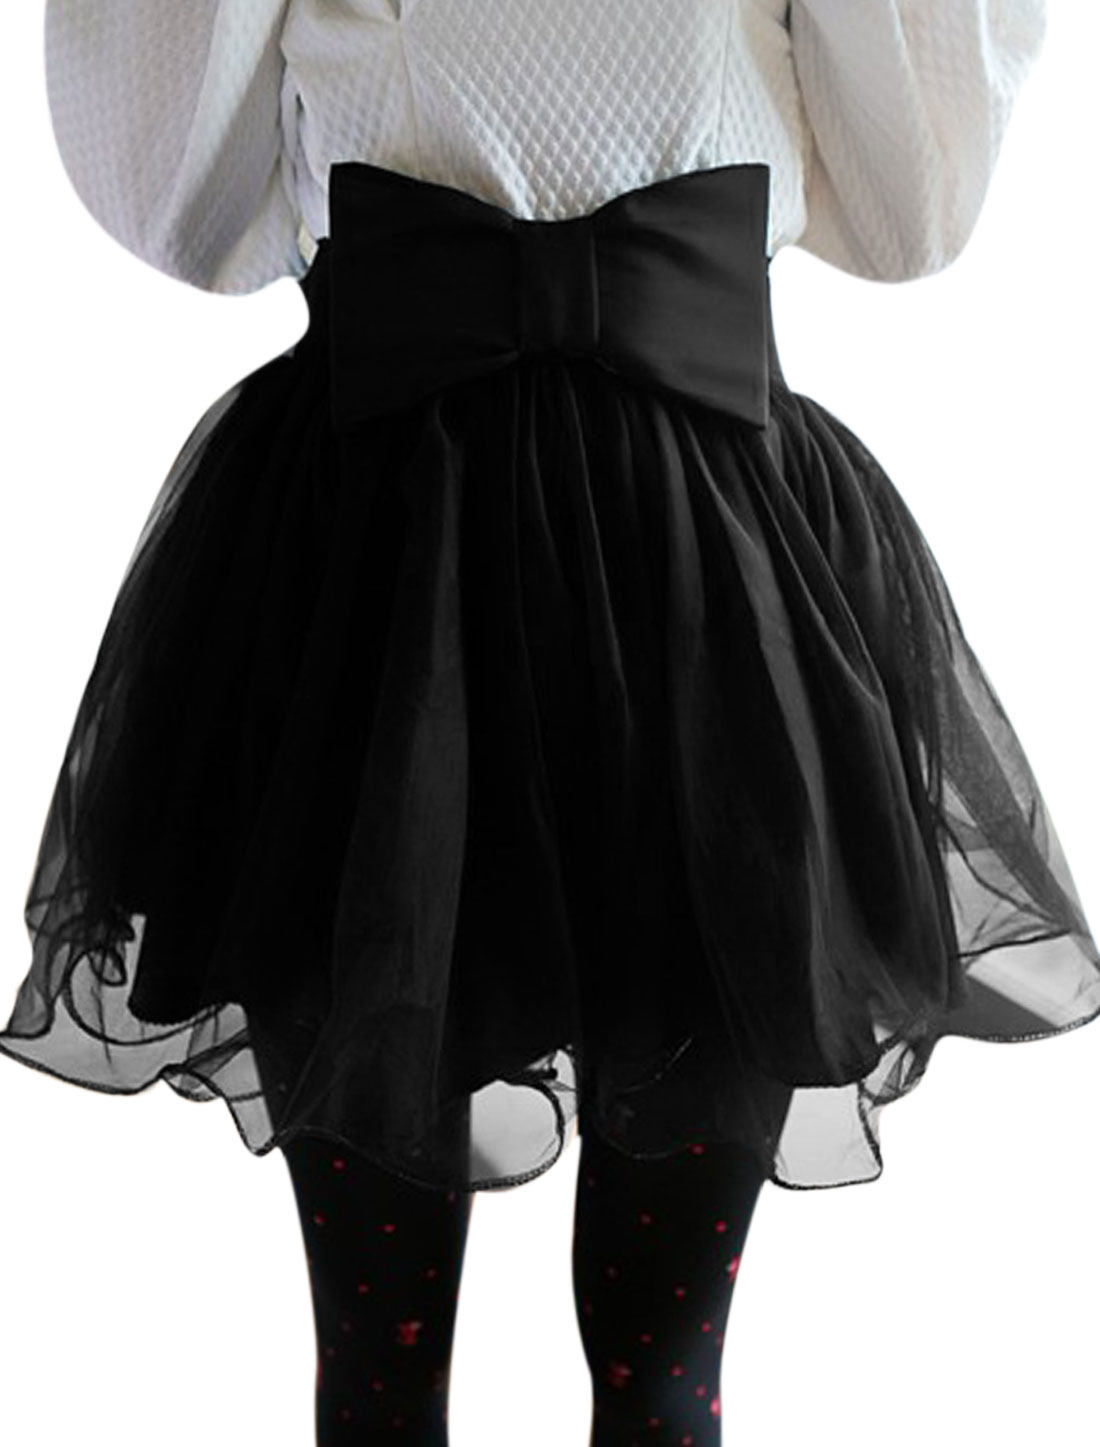 Lady Elastic Waist Lined Mini Full Skirt w Bowknot Decor Waist Strap Black XS